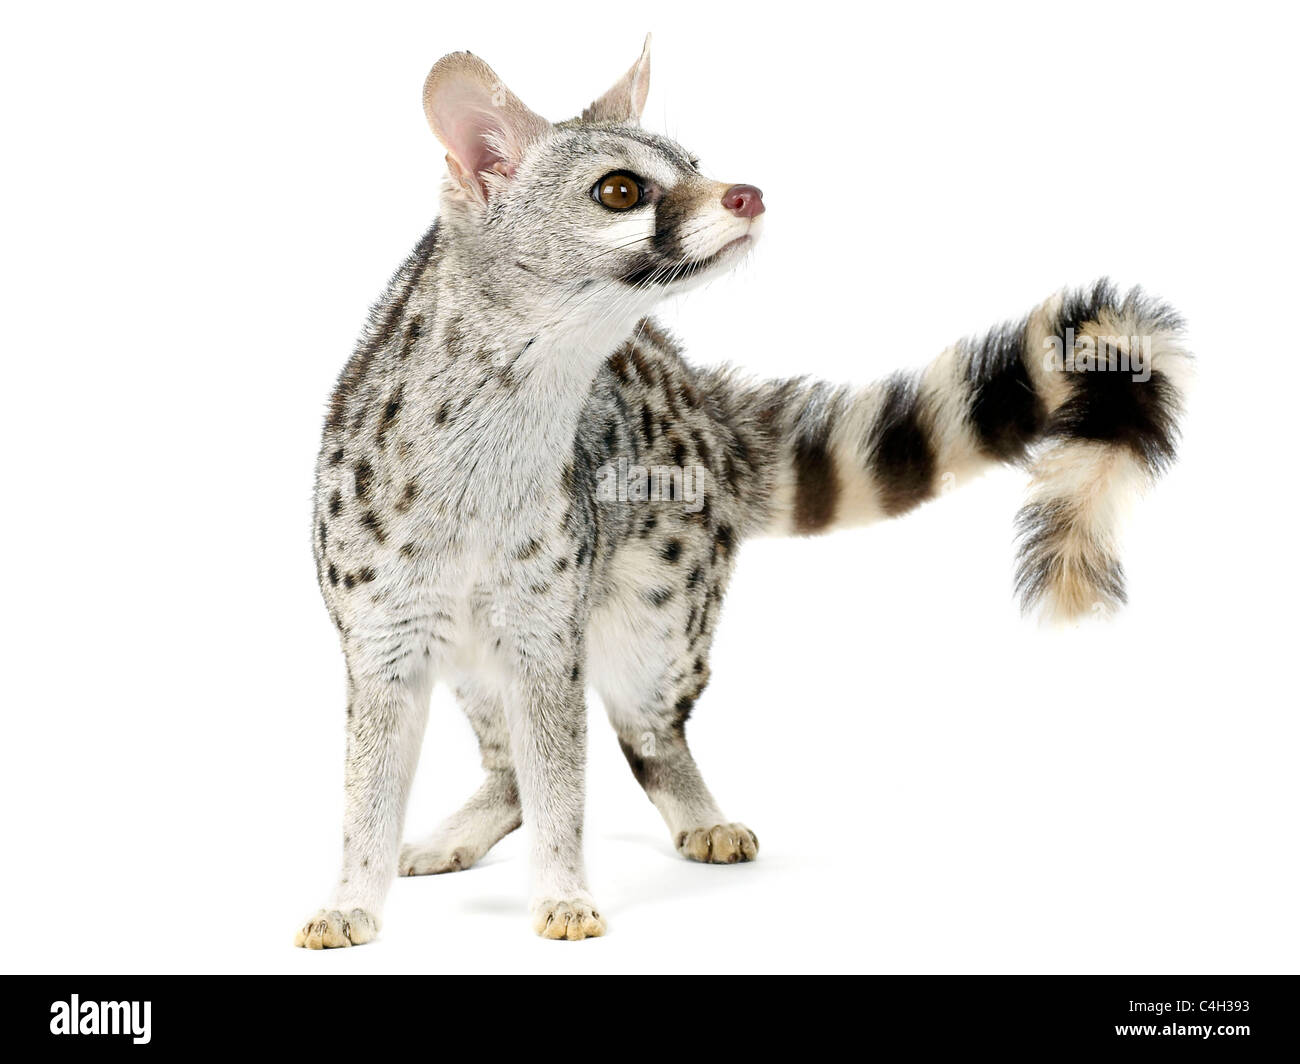 A genet from the family viverridae, related to the civet. - Stock Image